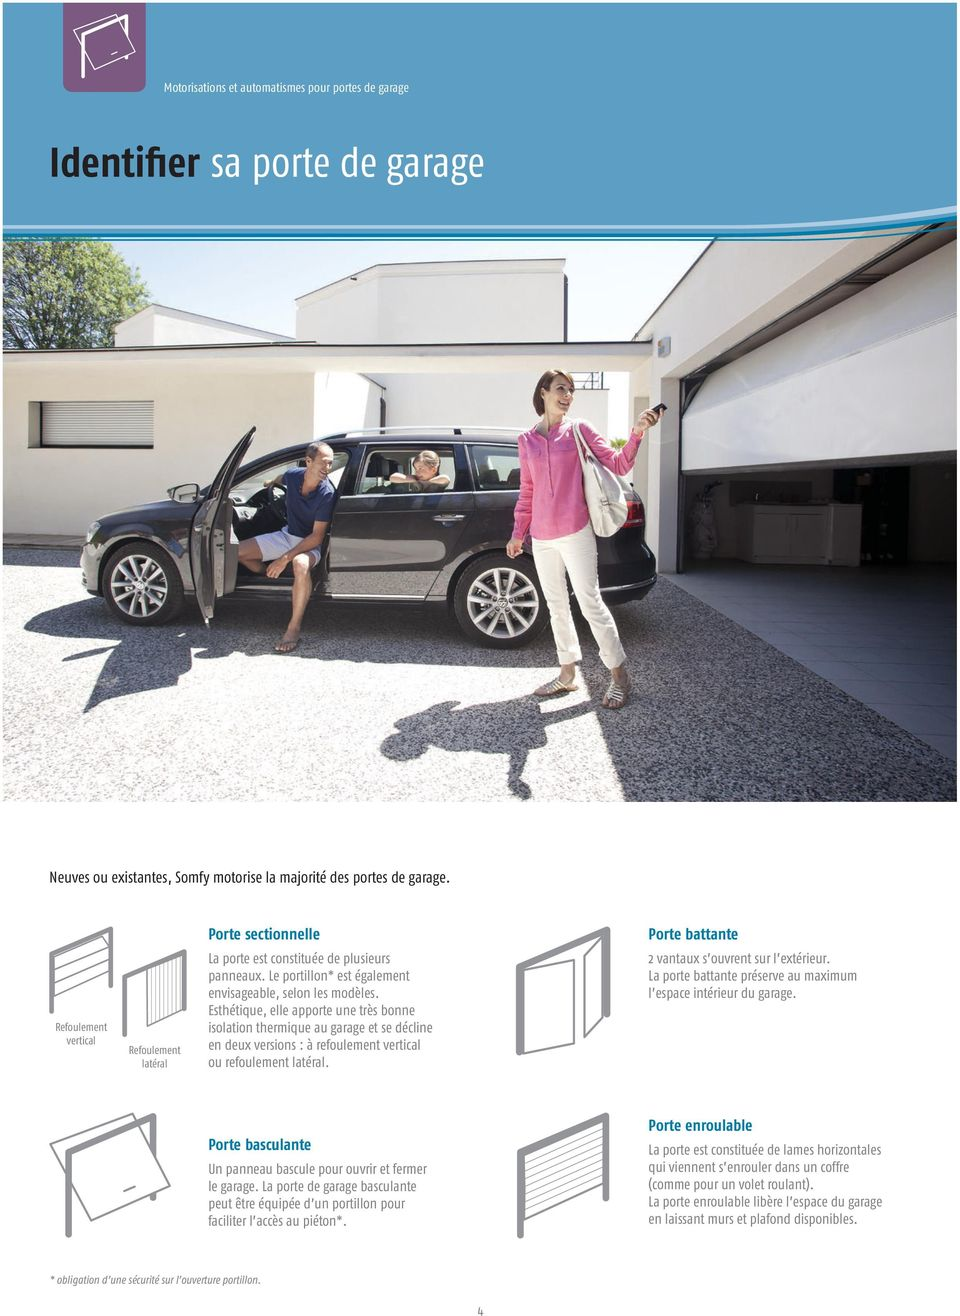 Guide portes de garage motorisations et automatismes pdf for Porte de garage enroulable le bon coin